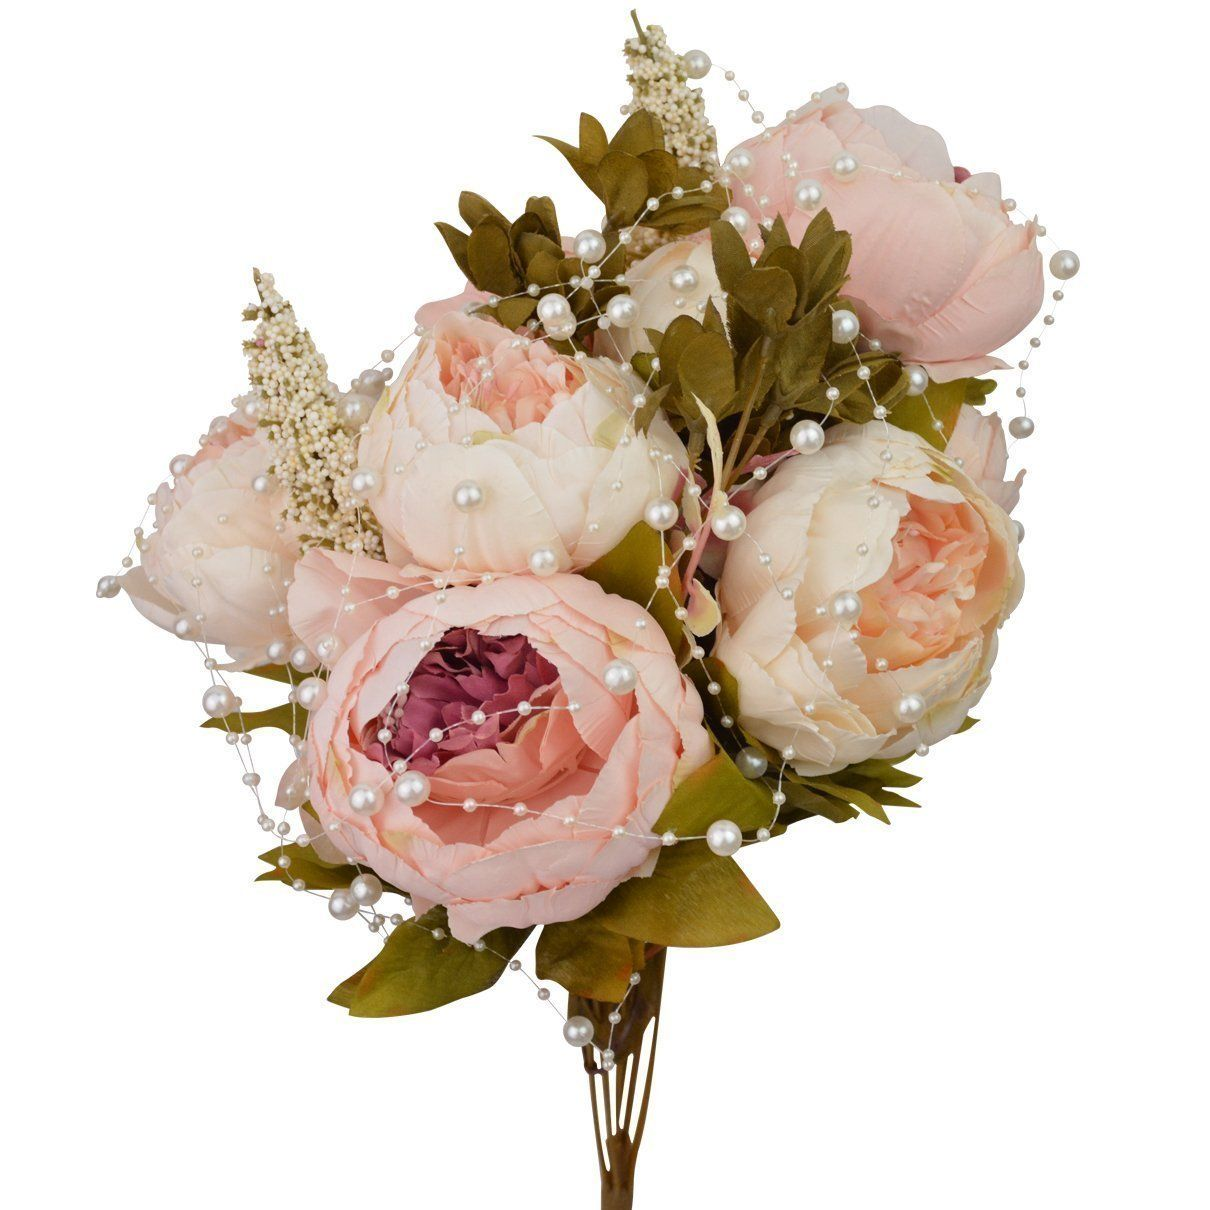 Craft Fake Flowers Floral Decor Glorious Moral for Home Dining-Table Hotel DIY Party Marriage Wedding Christmas Decoration Hmxpls Vintage Artificial Peony Silk Flowers Bouquet Light Pink